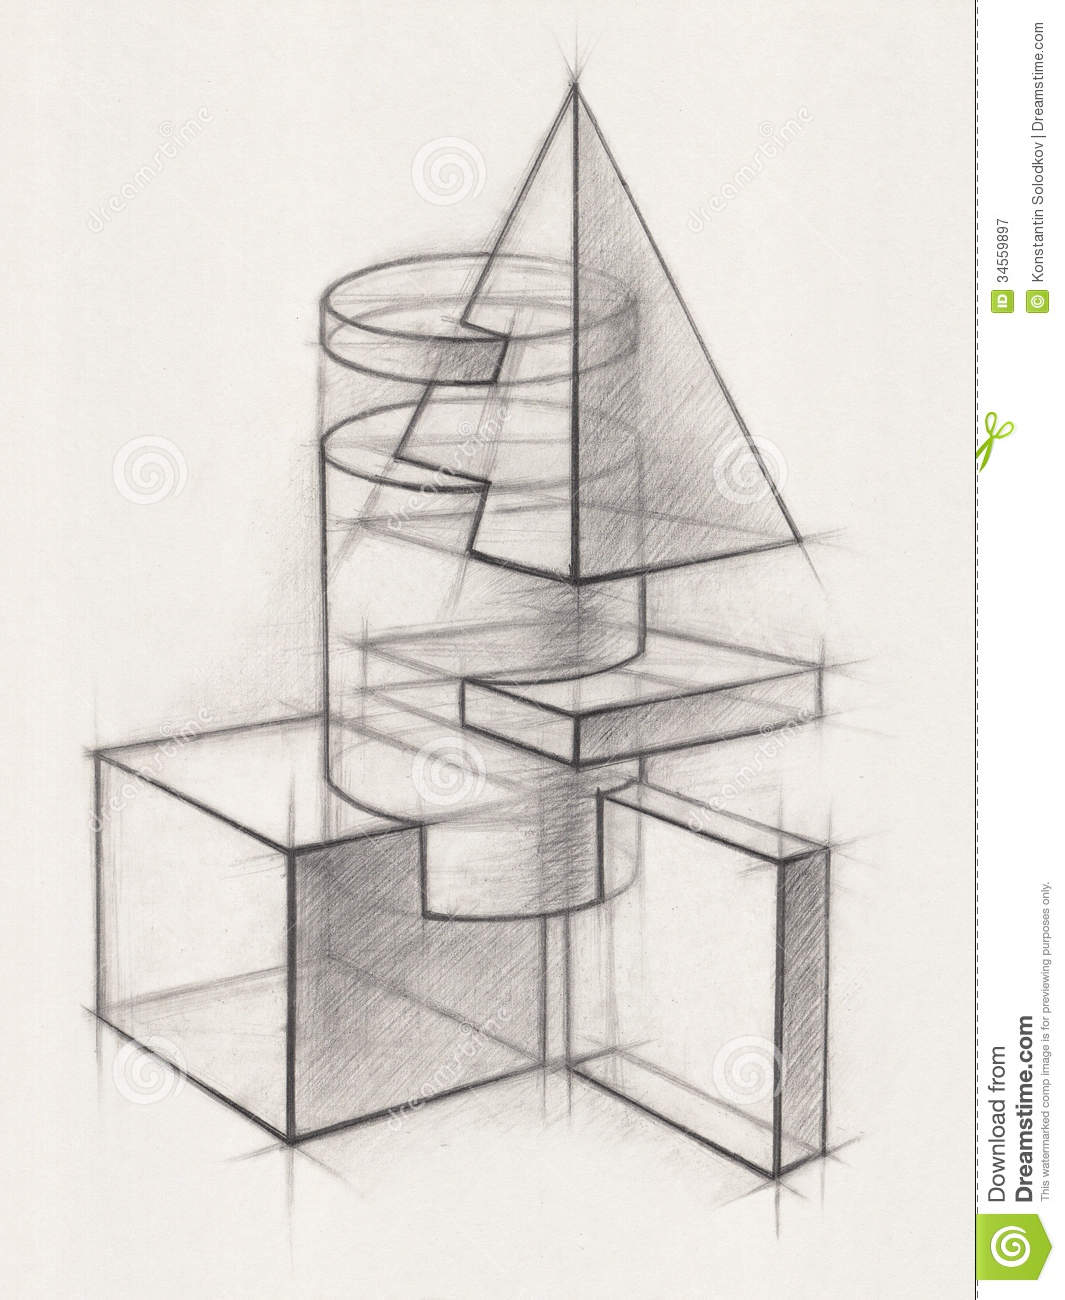 Solid Geometric Shapes Stock Illustration Image Of